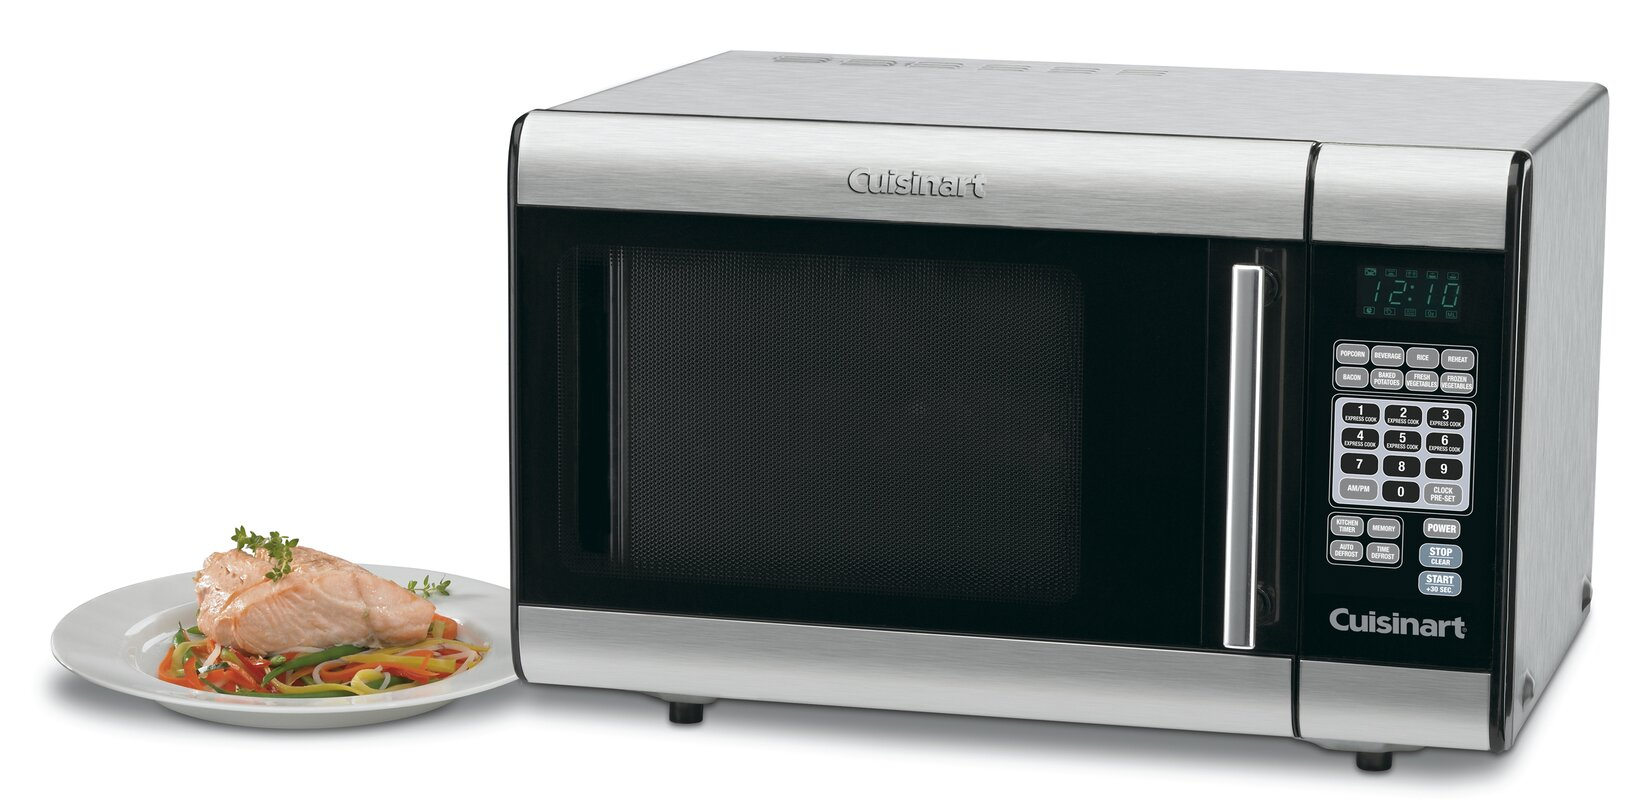 15 1 0 Cu Ft Countertop Microwave